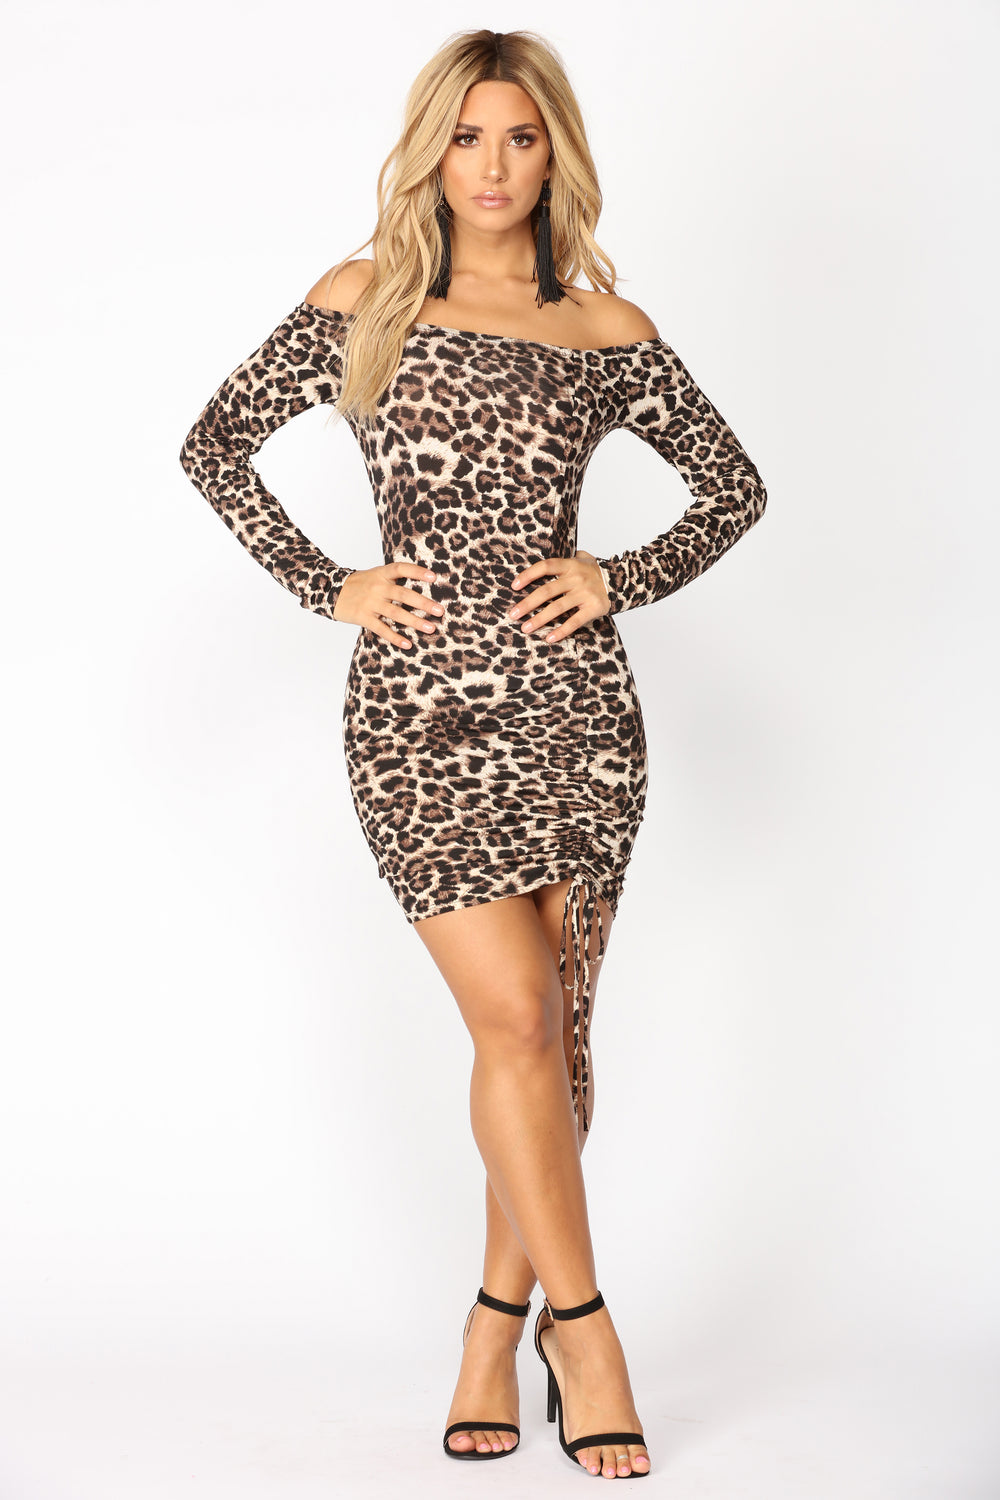 Year Of The Leopard Dress - Leopard